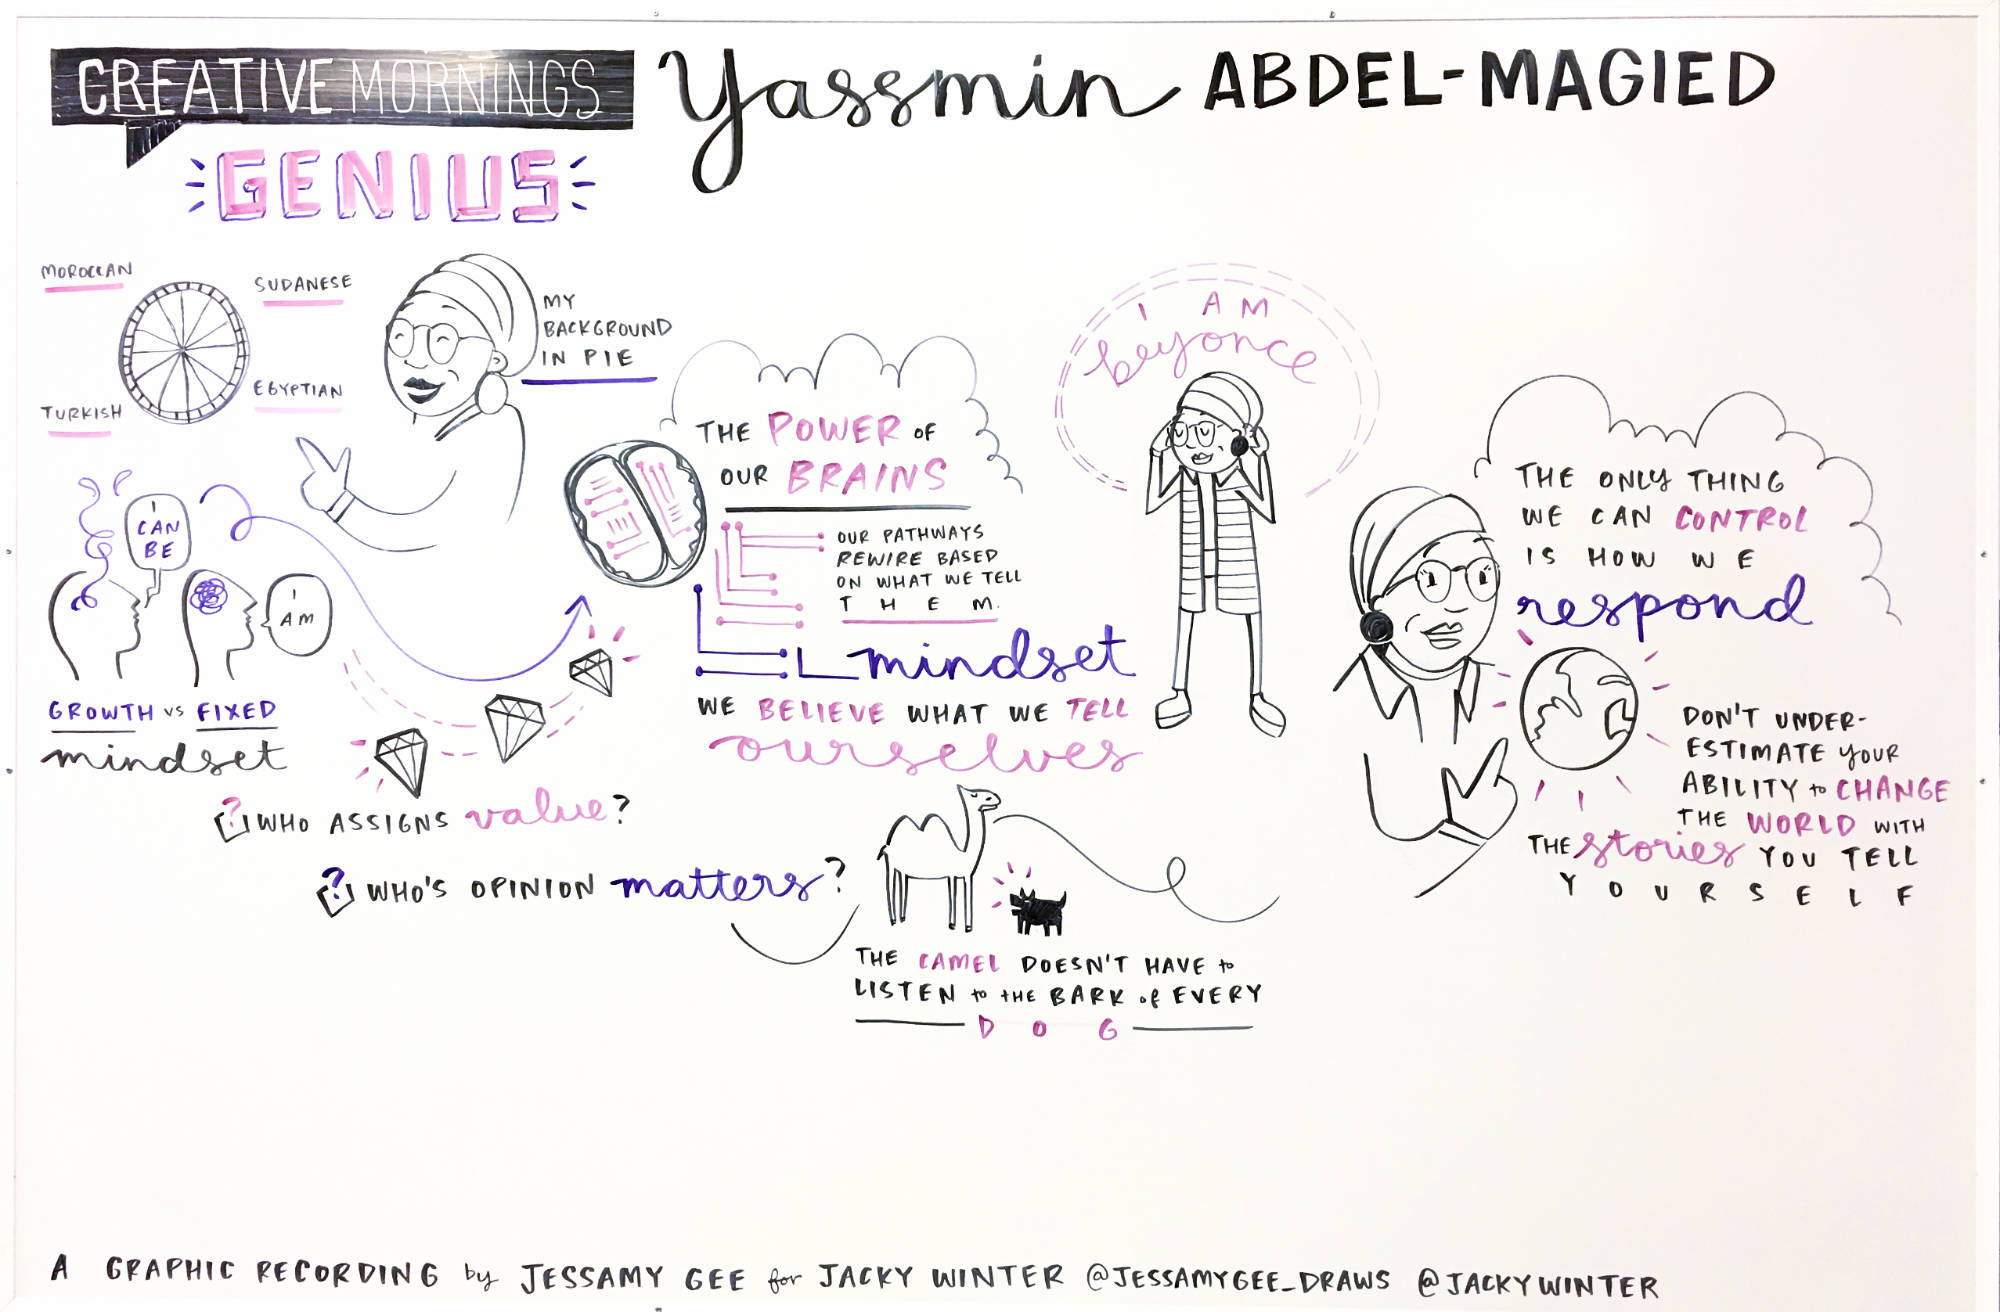 Graphic recording by  Jessamy Gee  at  Creative Mornings Melbourne on 25 August 2017. Photo by Jade Tjia.